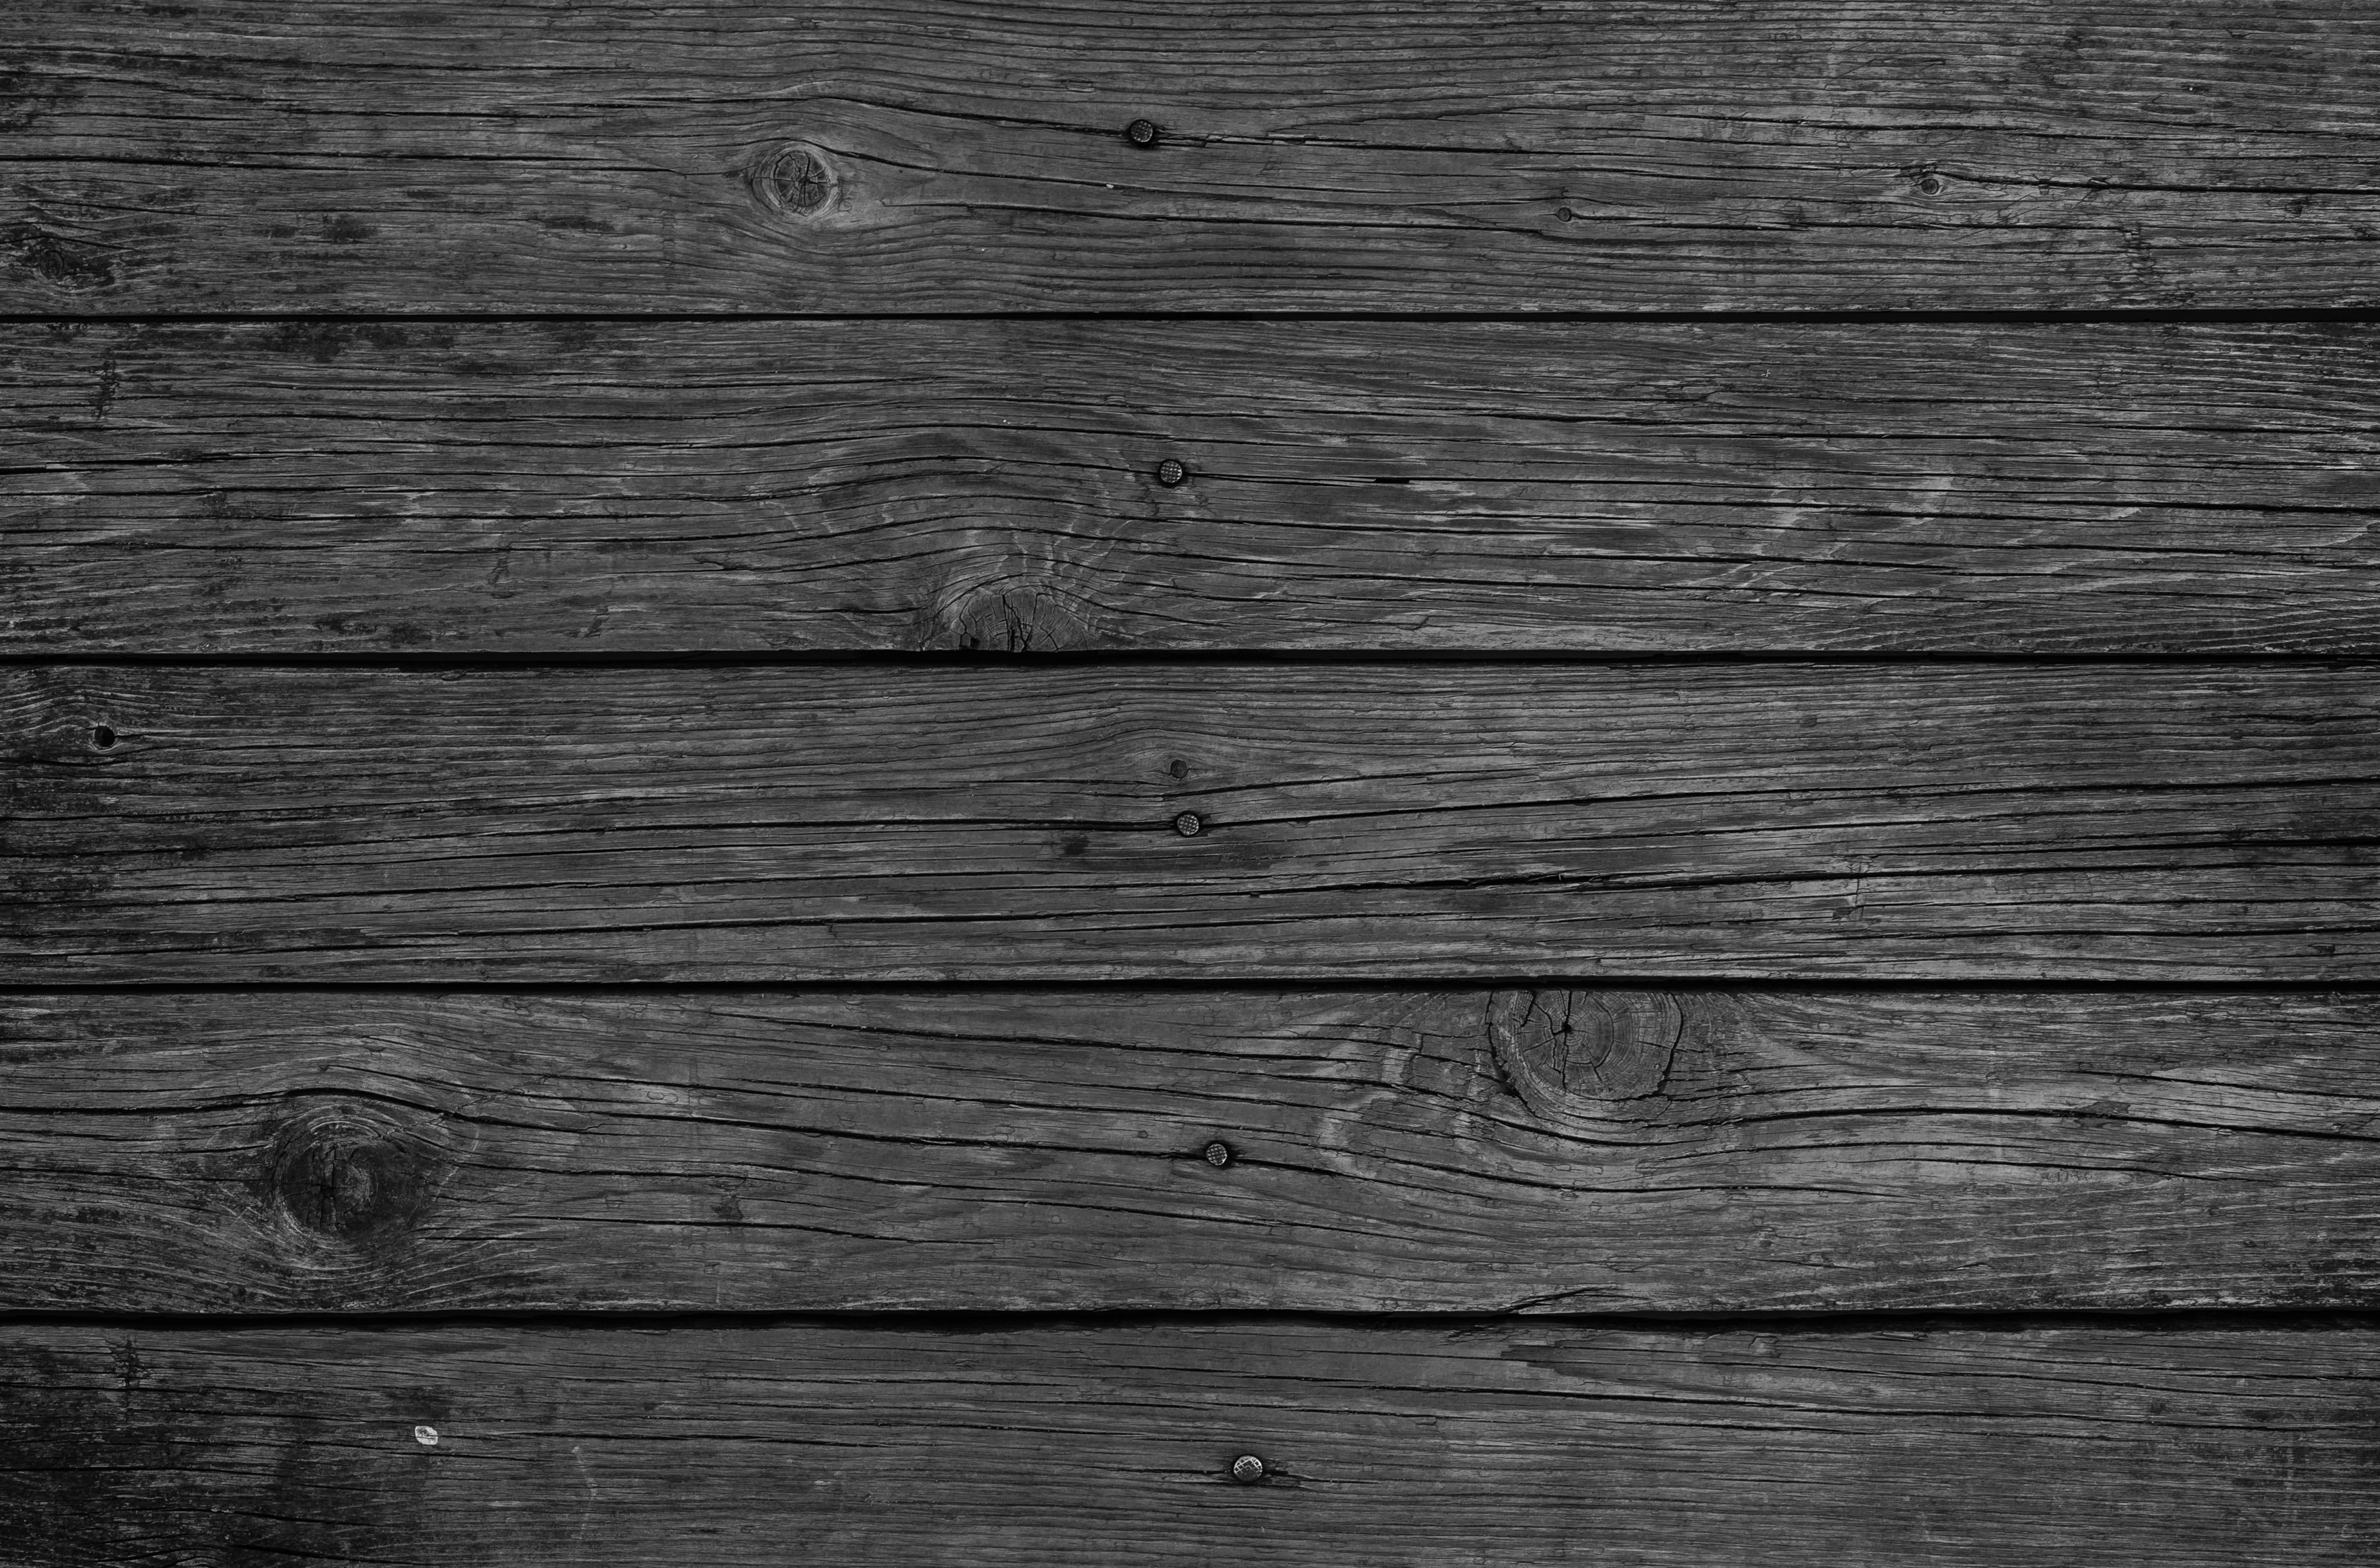 Brown Wooden Surface Wall Black Wood Tables 2k Wallpaper Hdwallpaper Desktop Wallpaper Black Wood Texture Hd Wallpaper